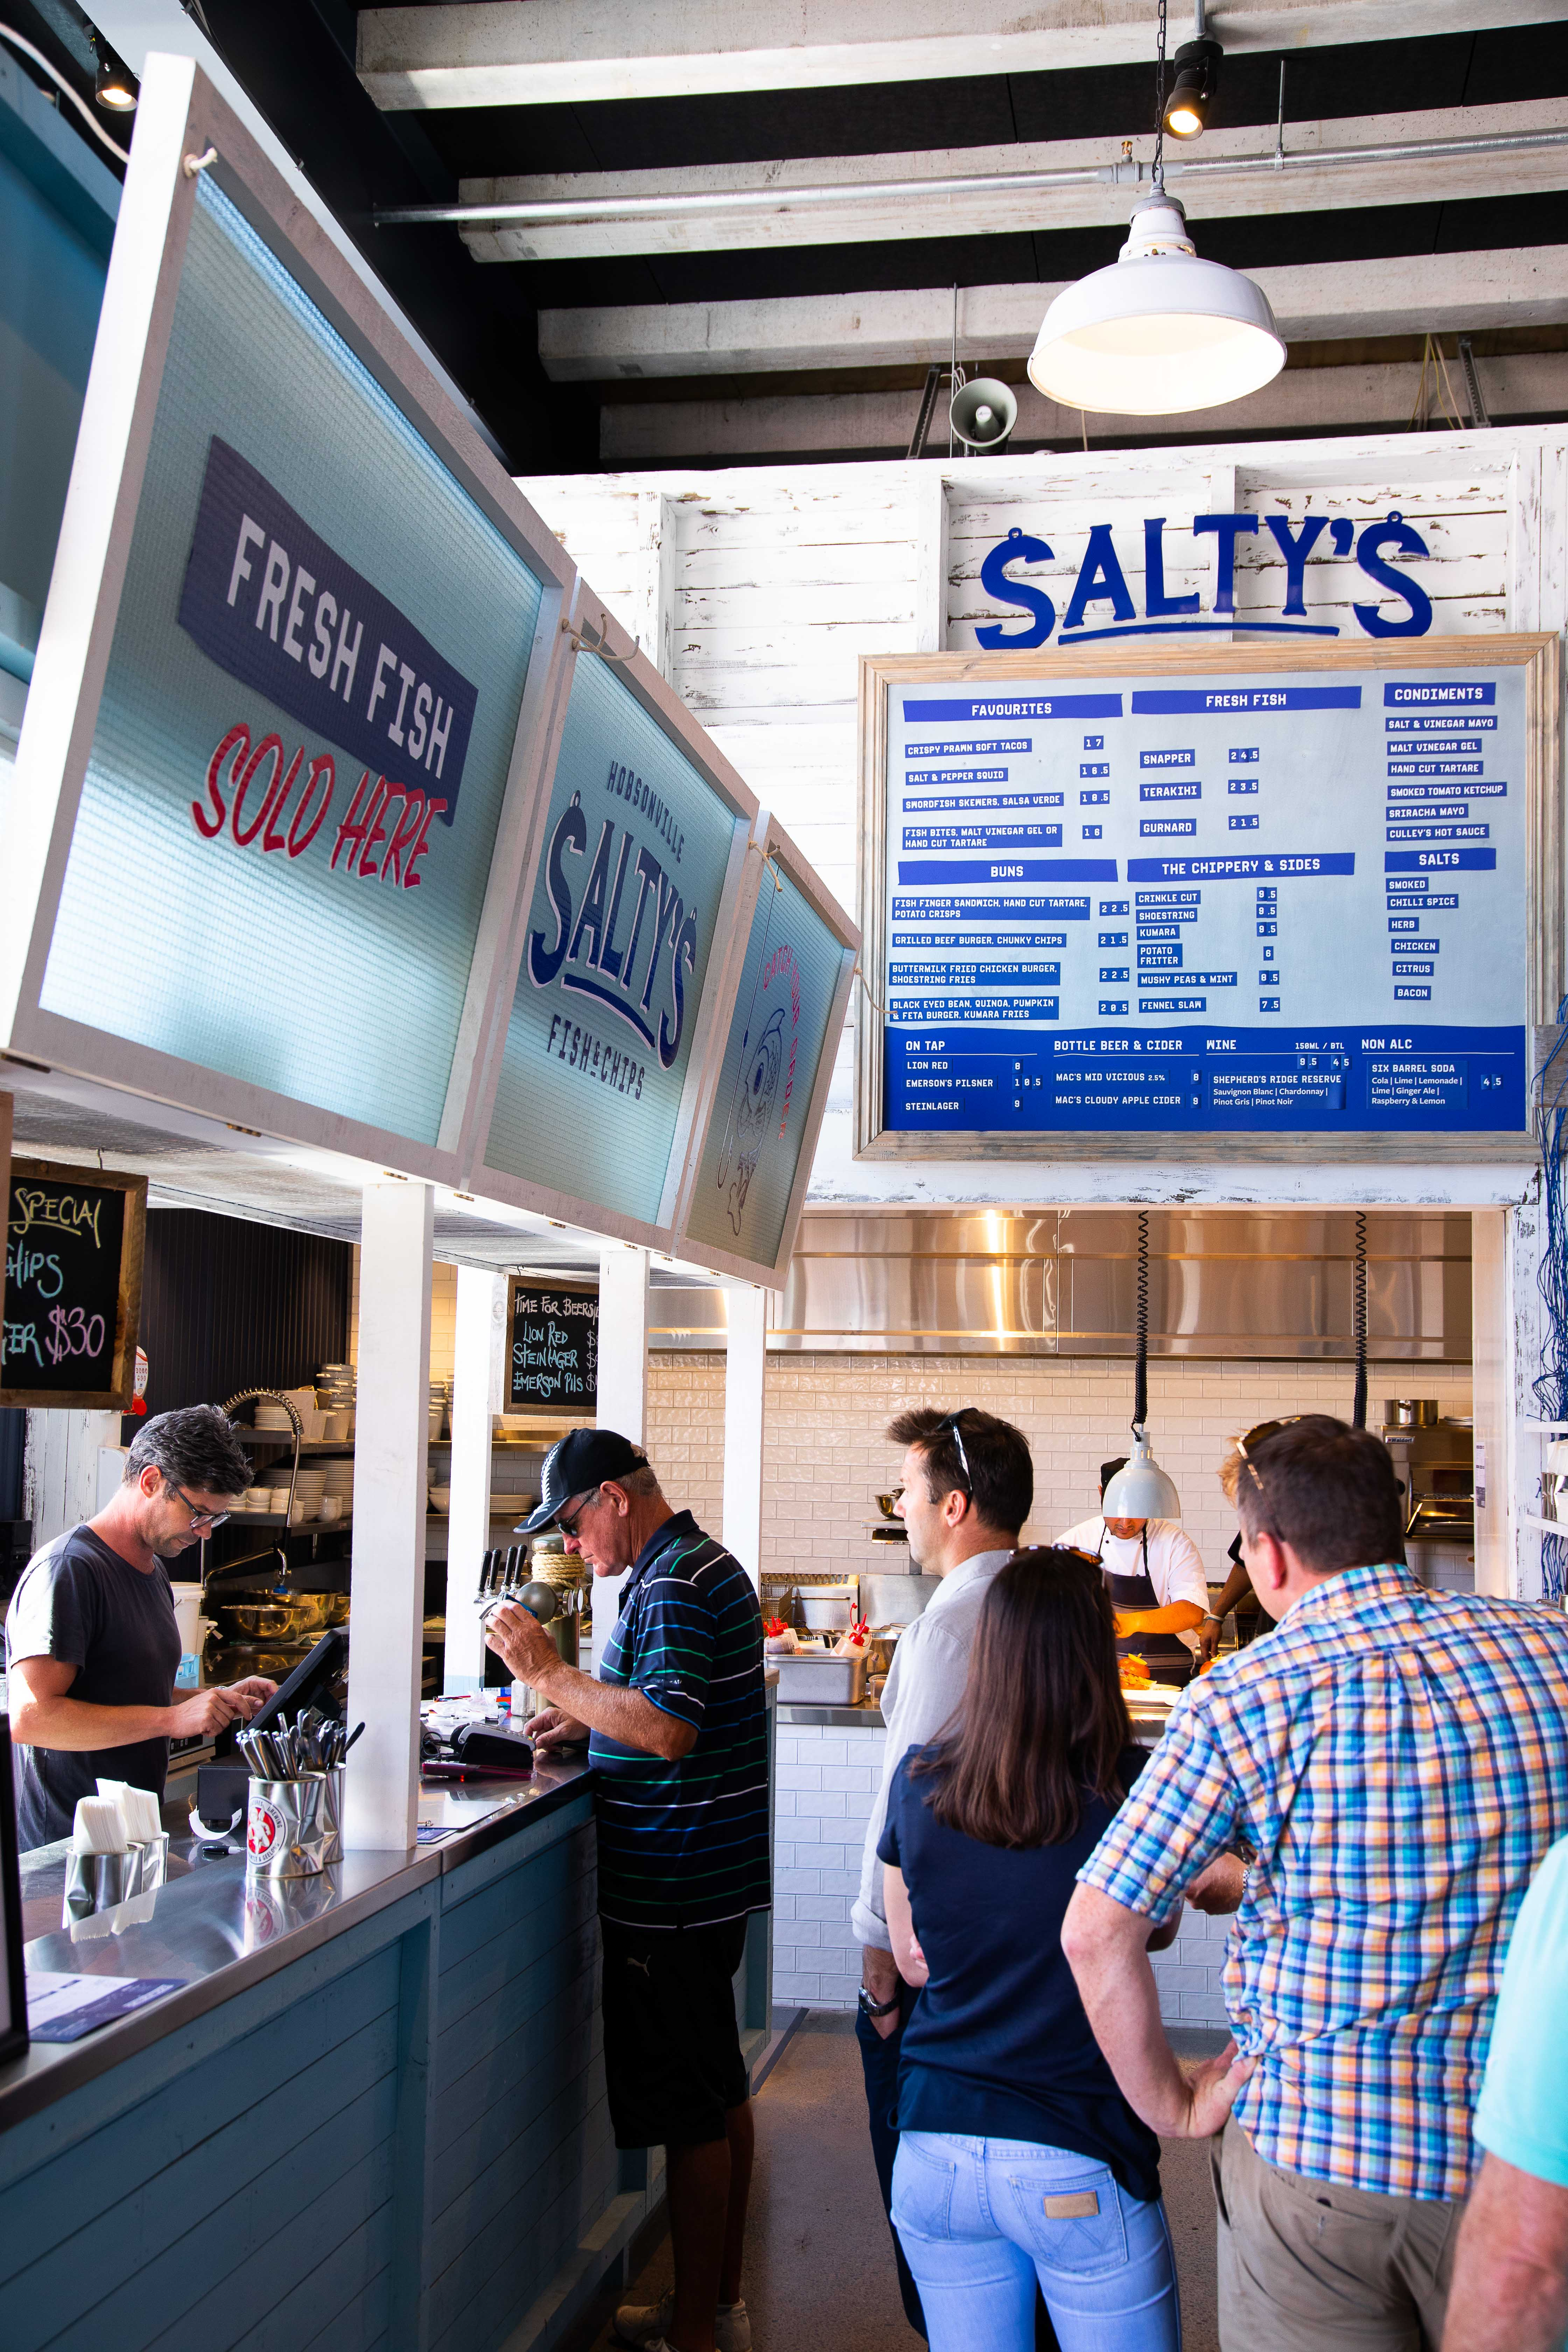 Salty's Fish and Chips